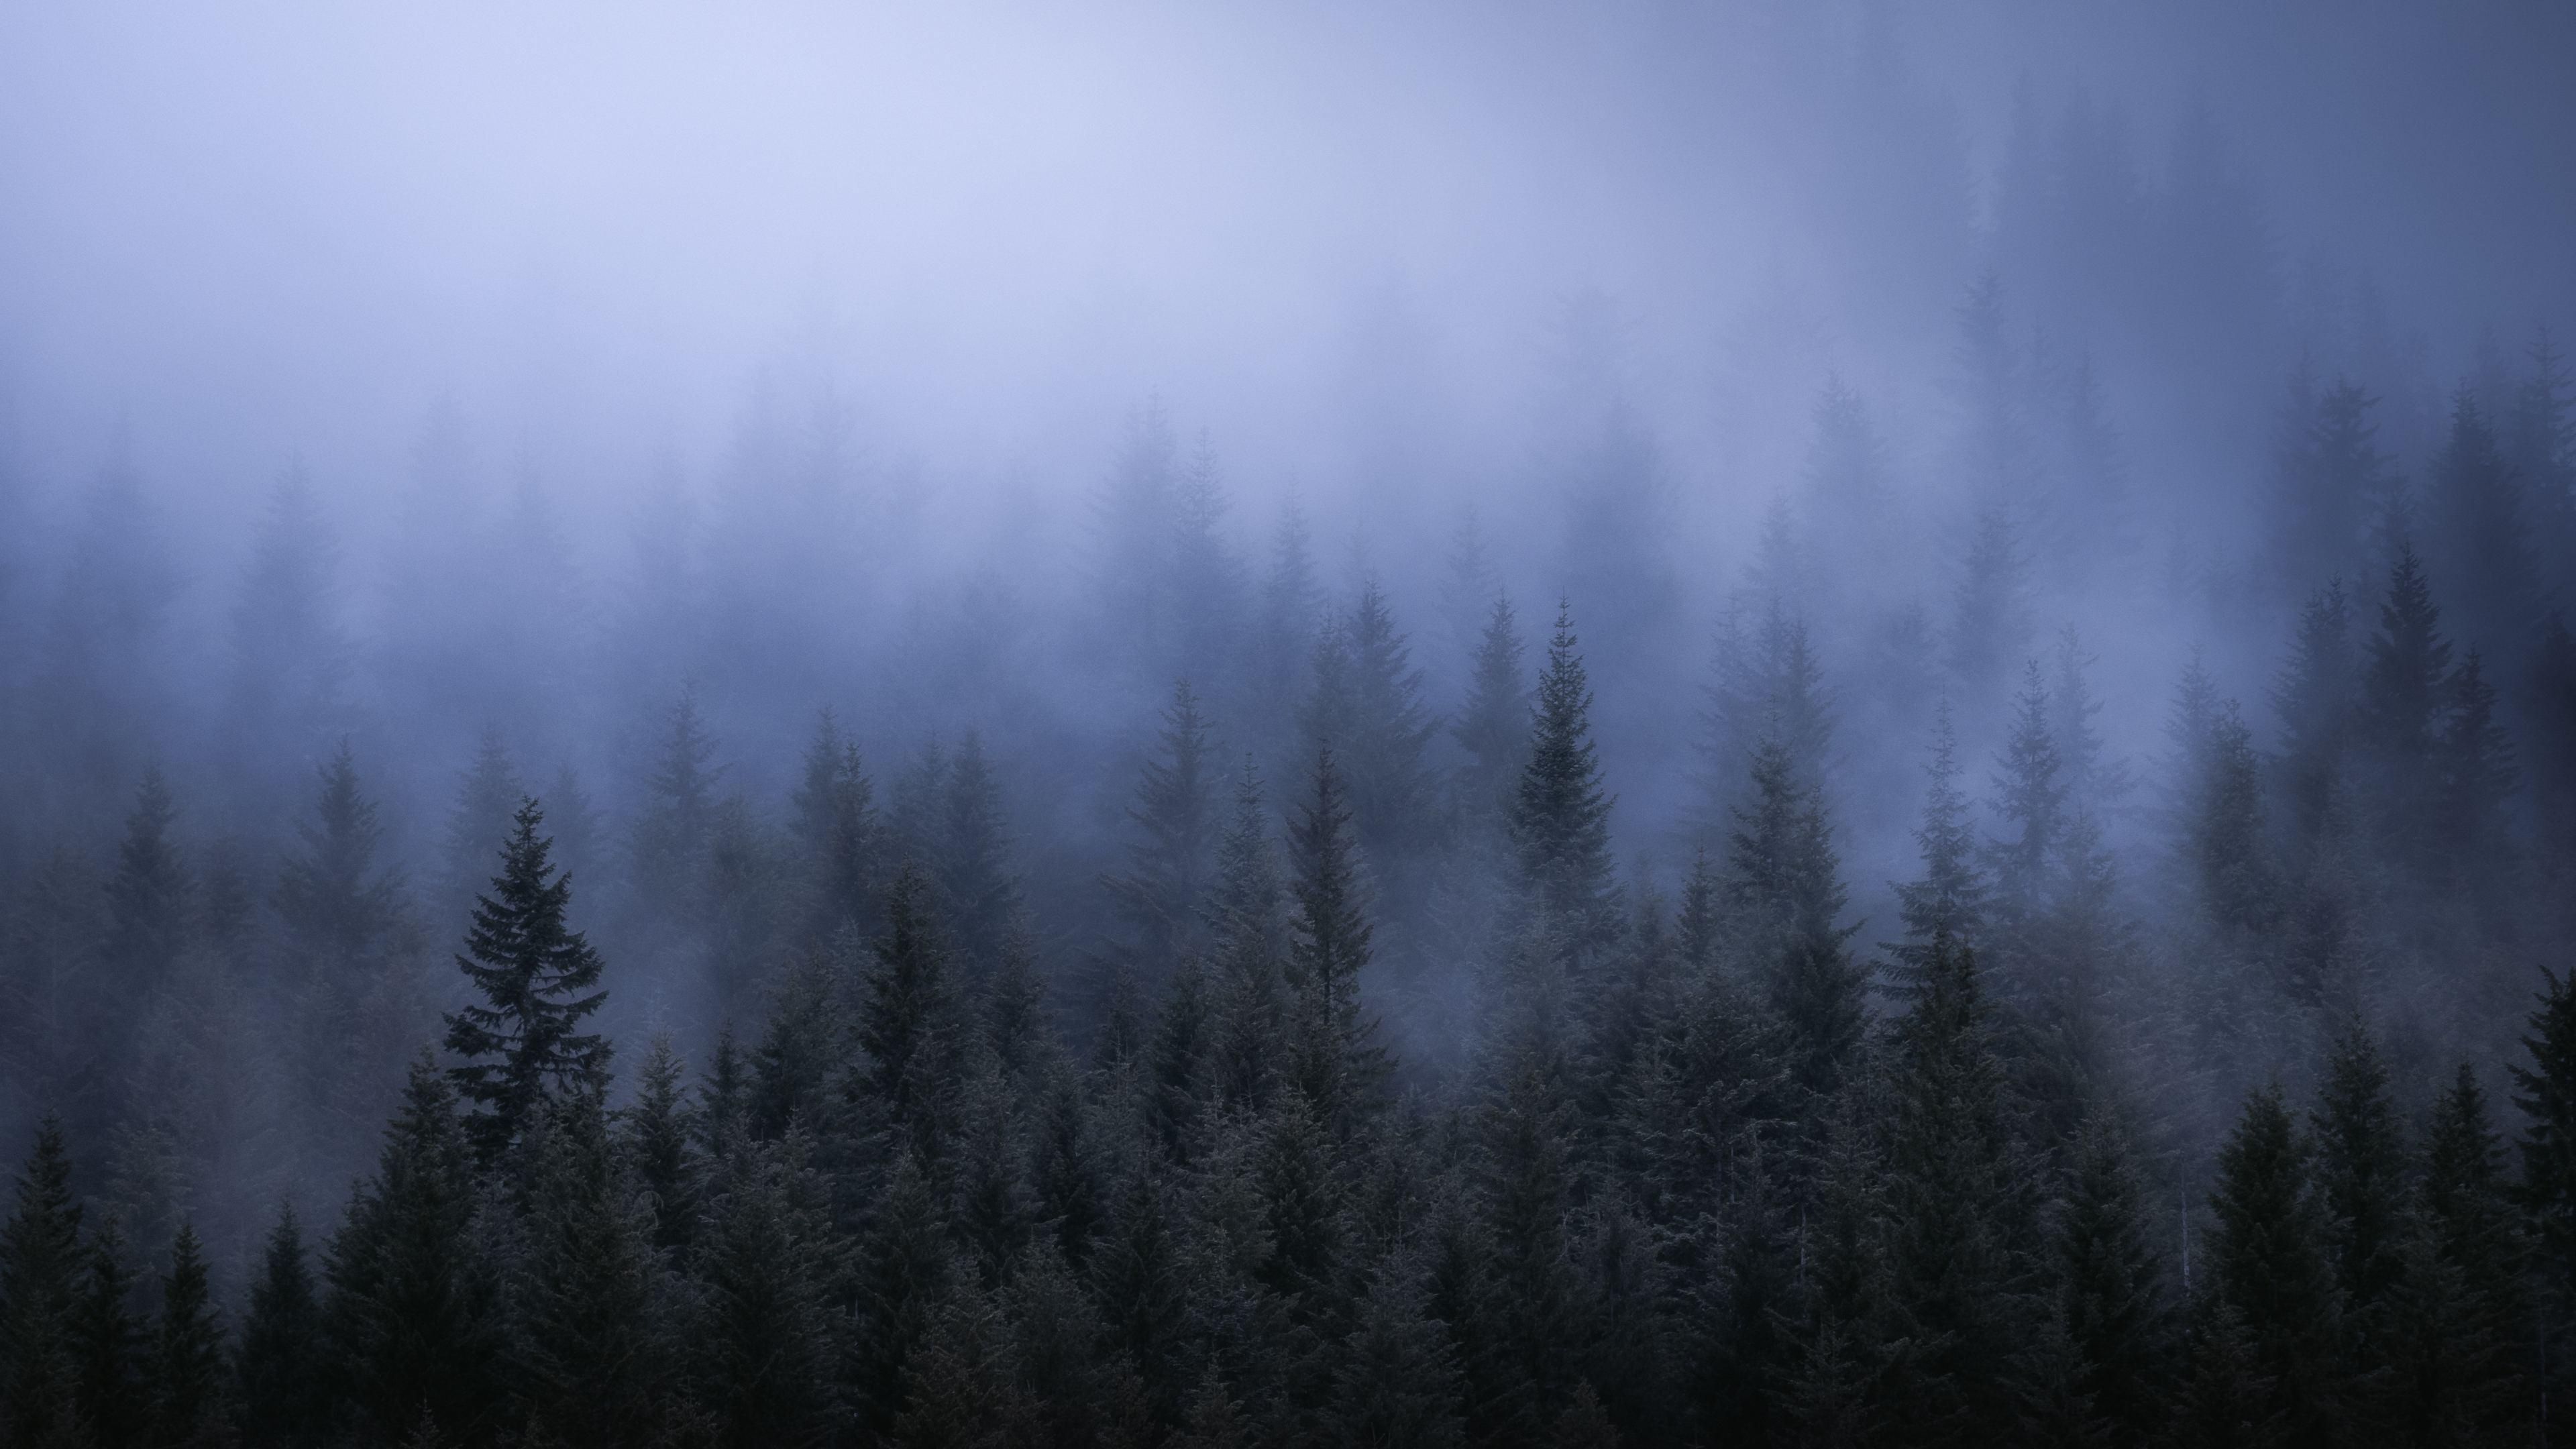 Wallpapers 4k Fog Dark Forest Tress Landscape 5k 4k